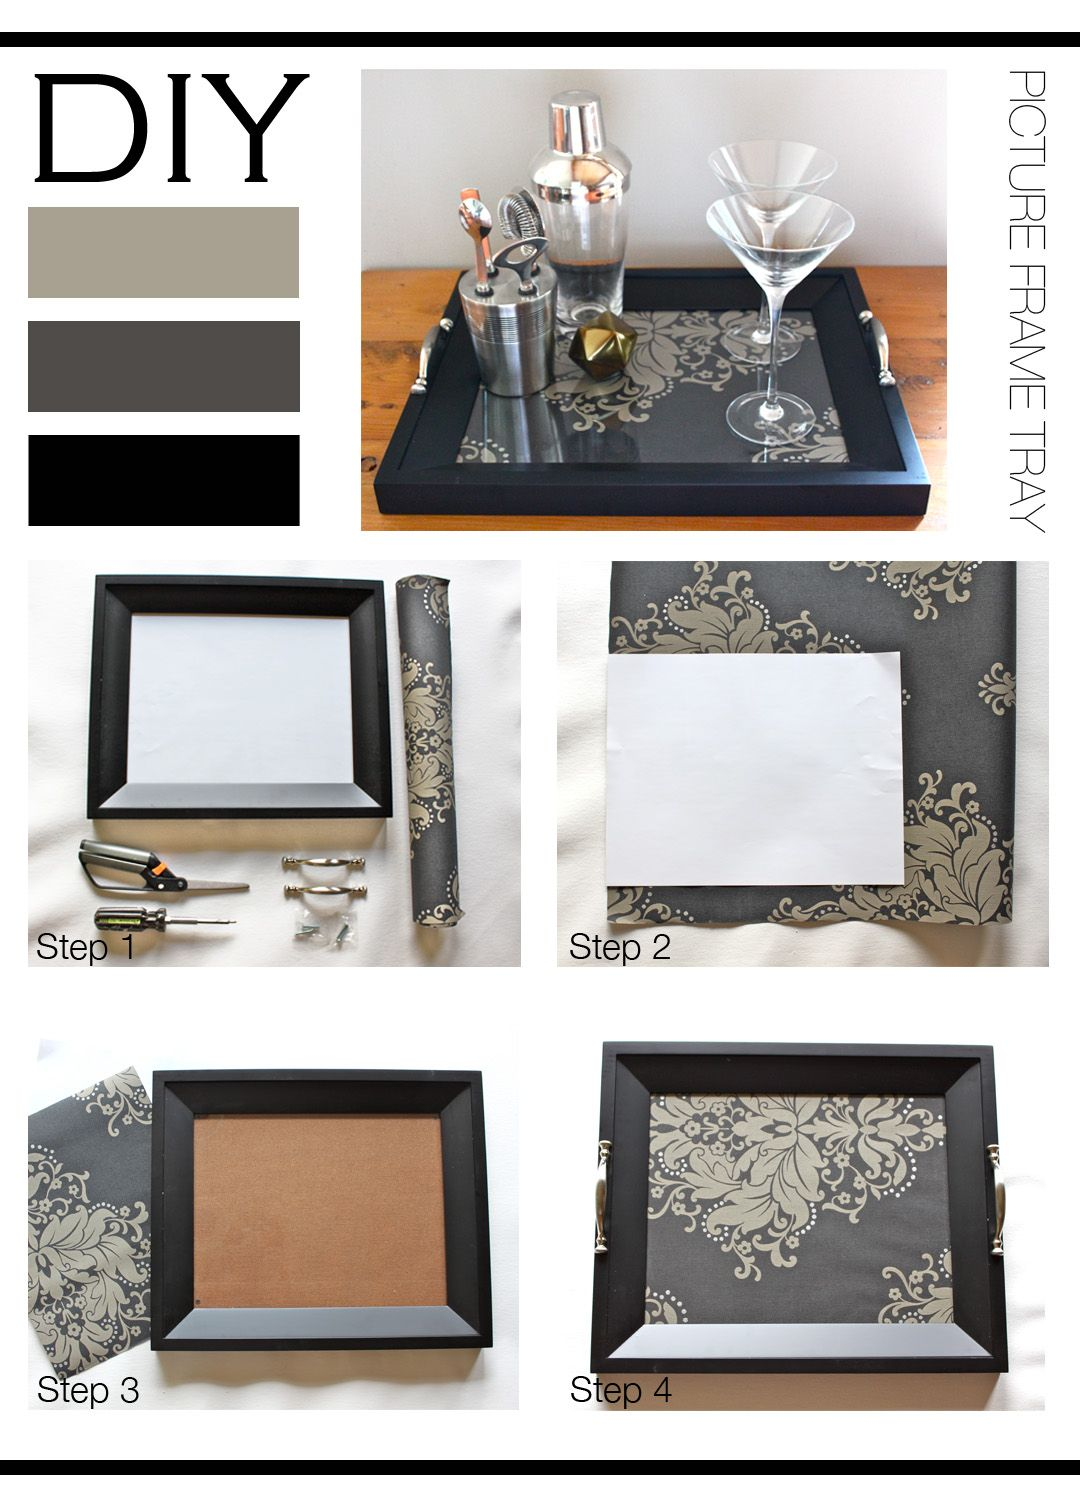 Bright vases trays dishes aroma lamps mirrors in beautiful frames - Diy Picture Frame Tray